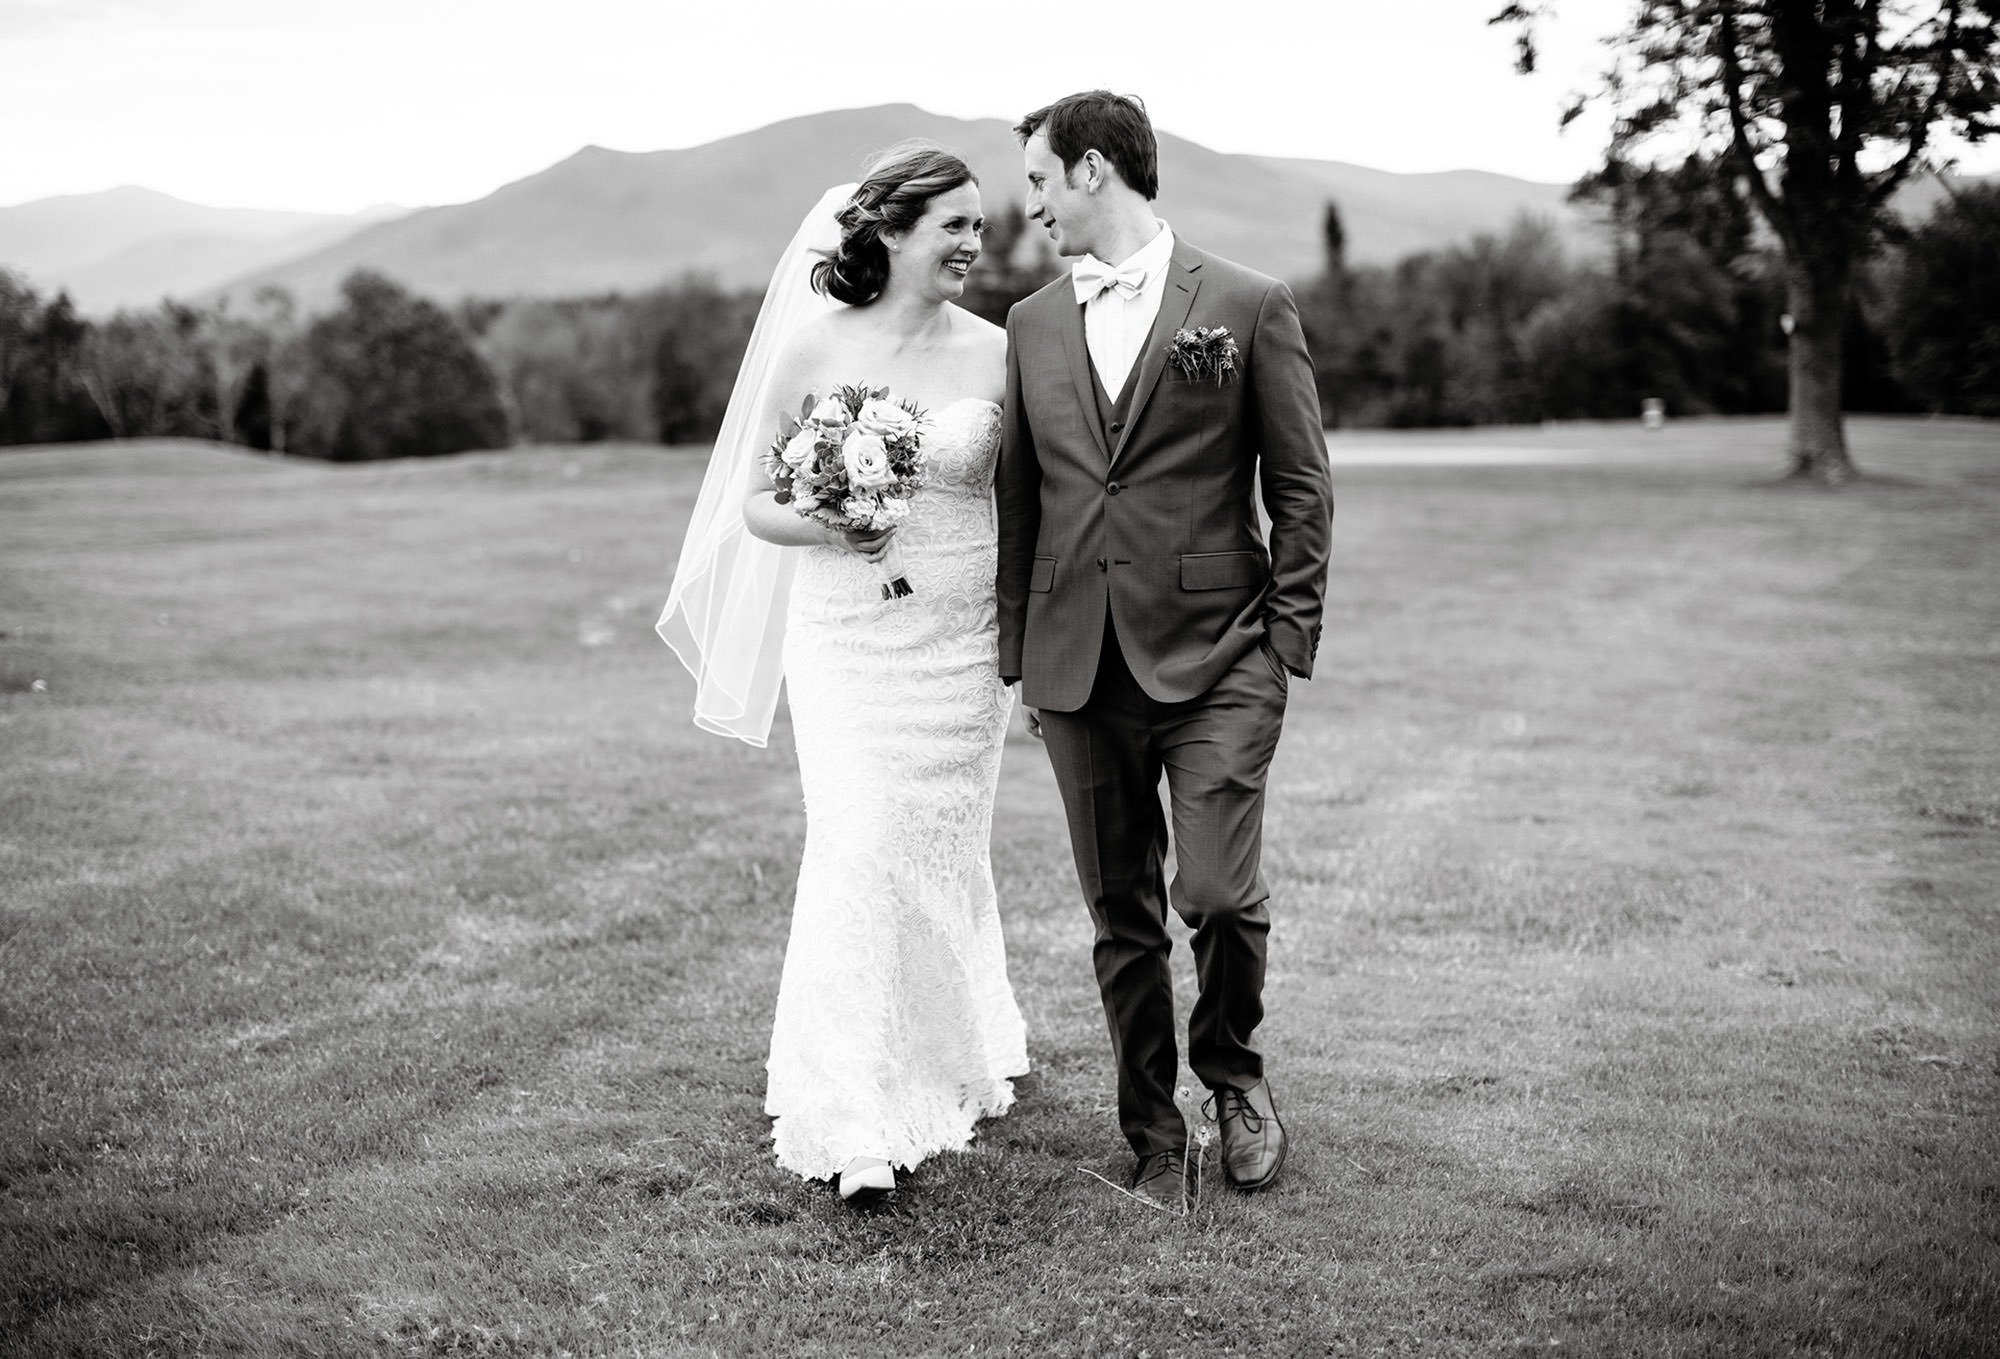 The bride and groom stroll along the grounds on their Mountain View Grand Wedding day in the White Mountains.